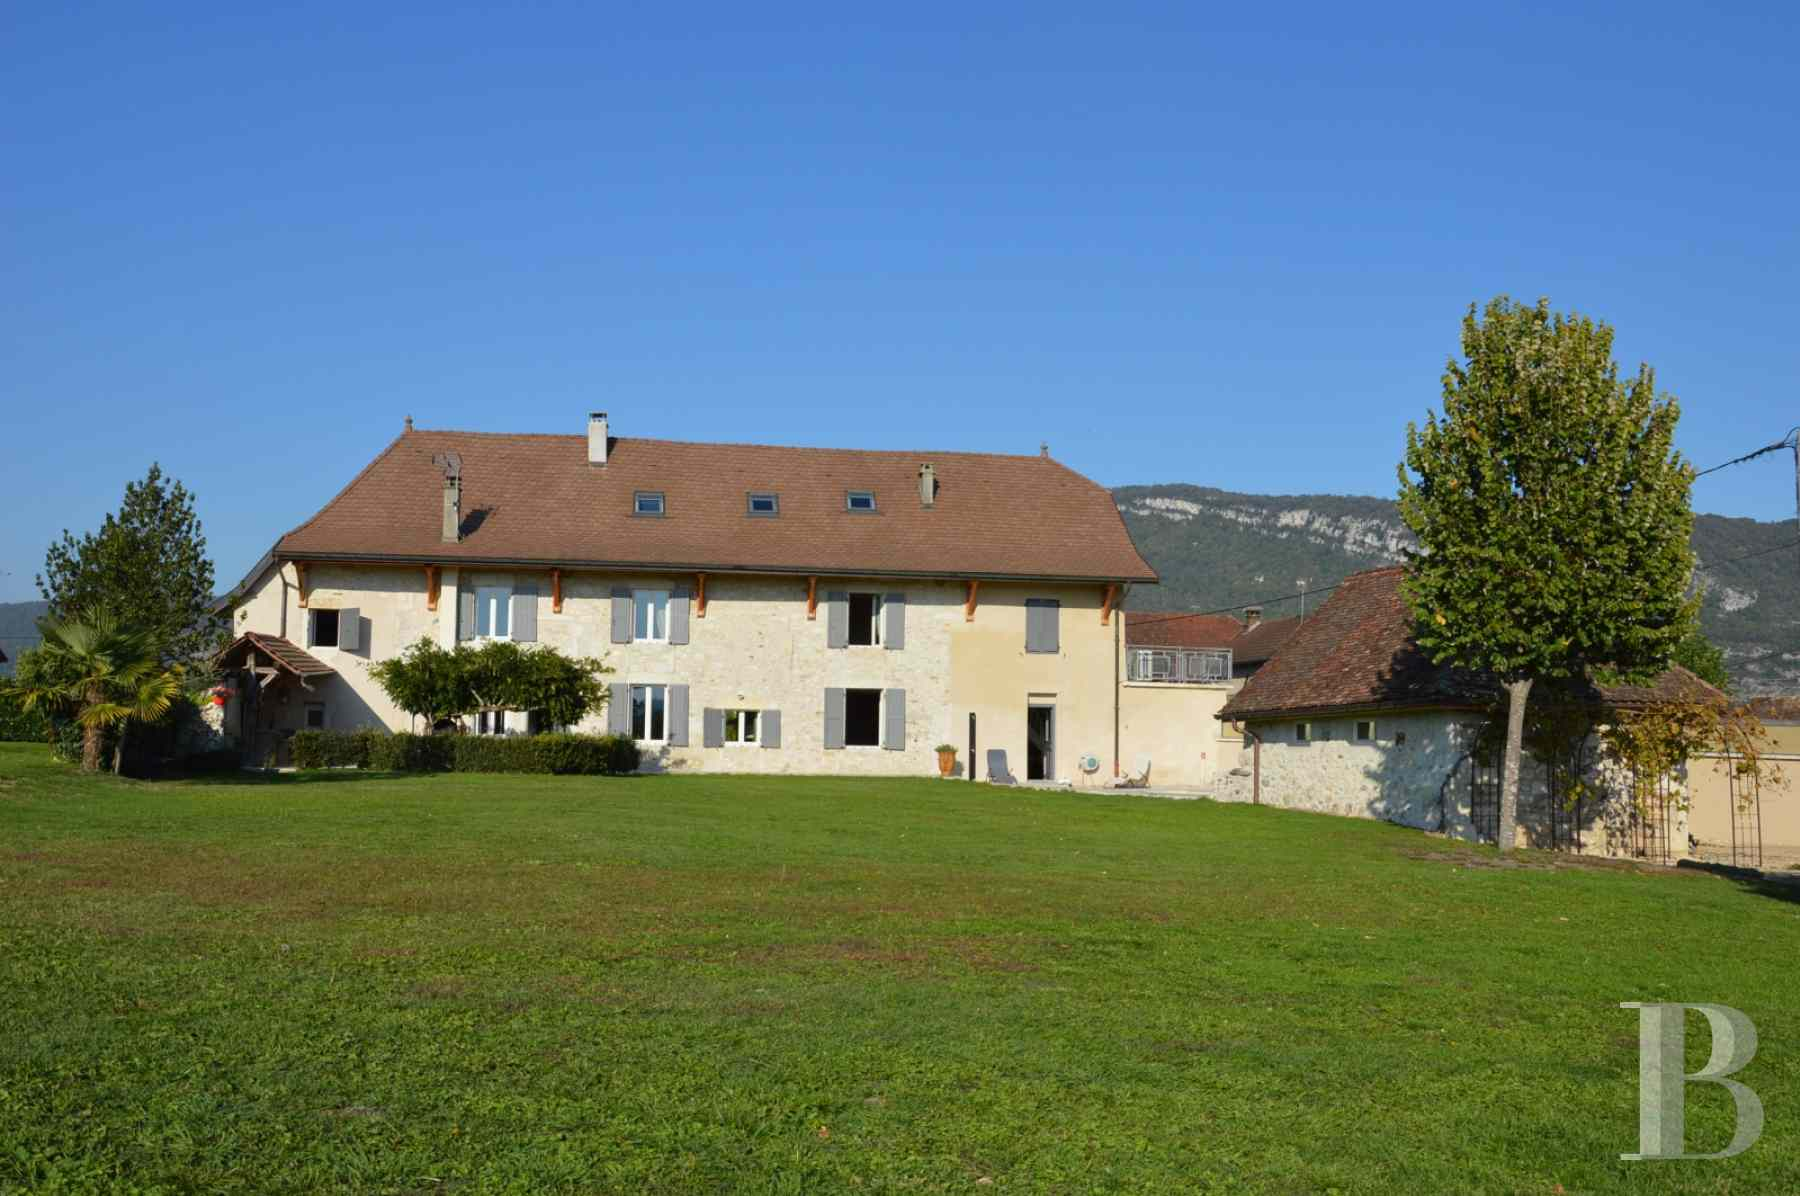 property for sale France rhones alps hamlet bugey - 1 zoom